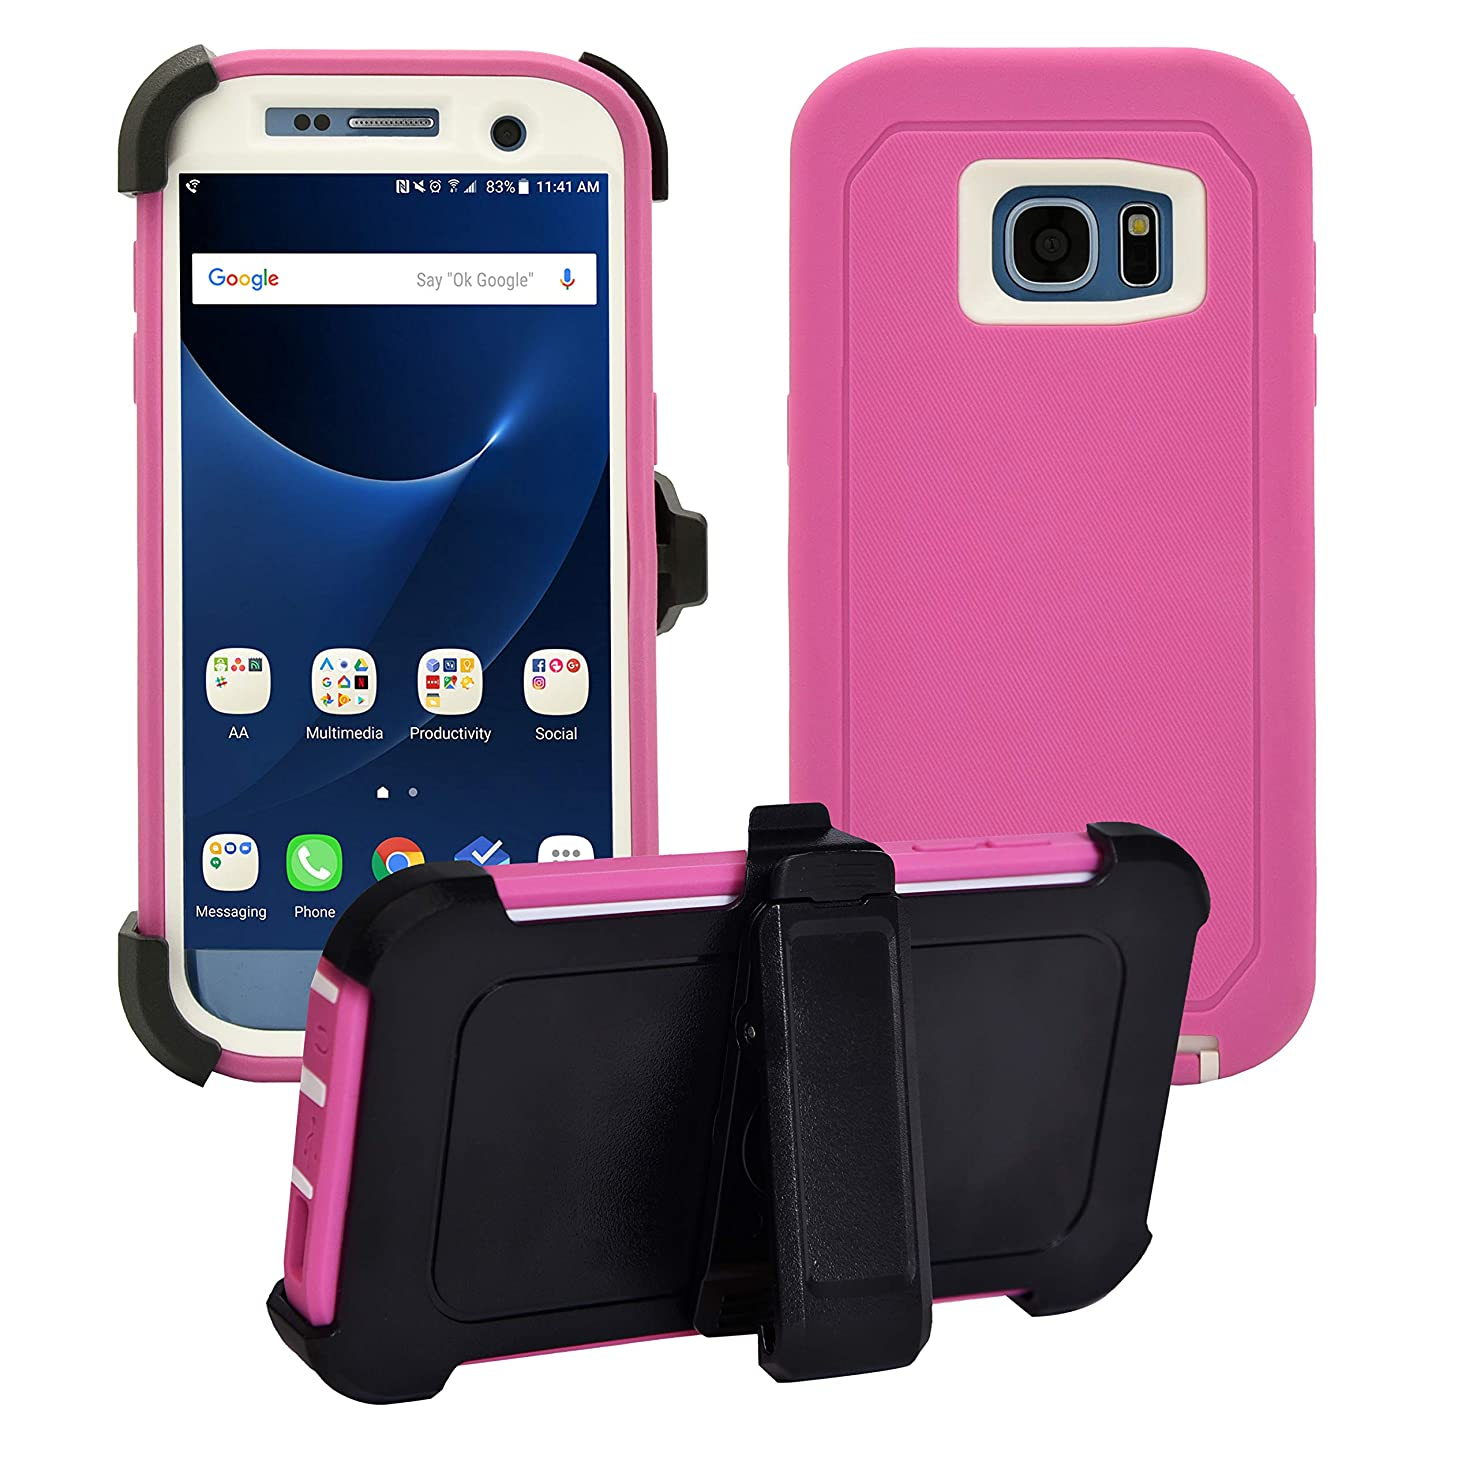 Samsung Galaxy S7 Edge Cover | Holster Case | Full Body Military Grade Edge-to-Edge Protection with carrying belt clip | Drop Proof Shockproof Dustproof | Pink / White